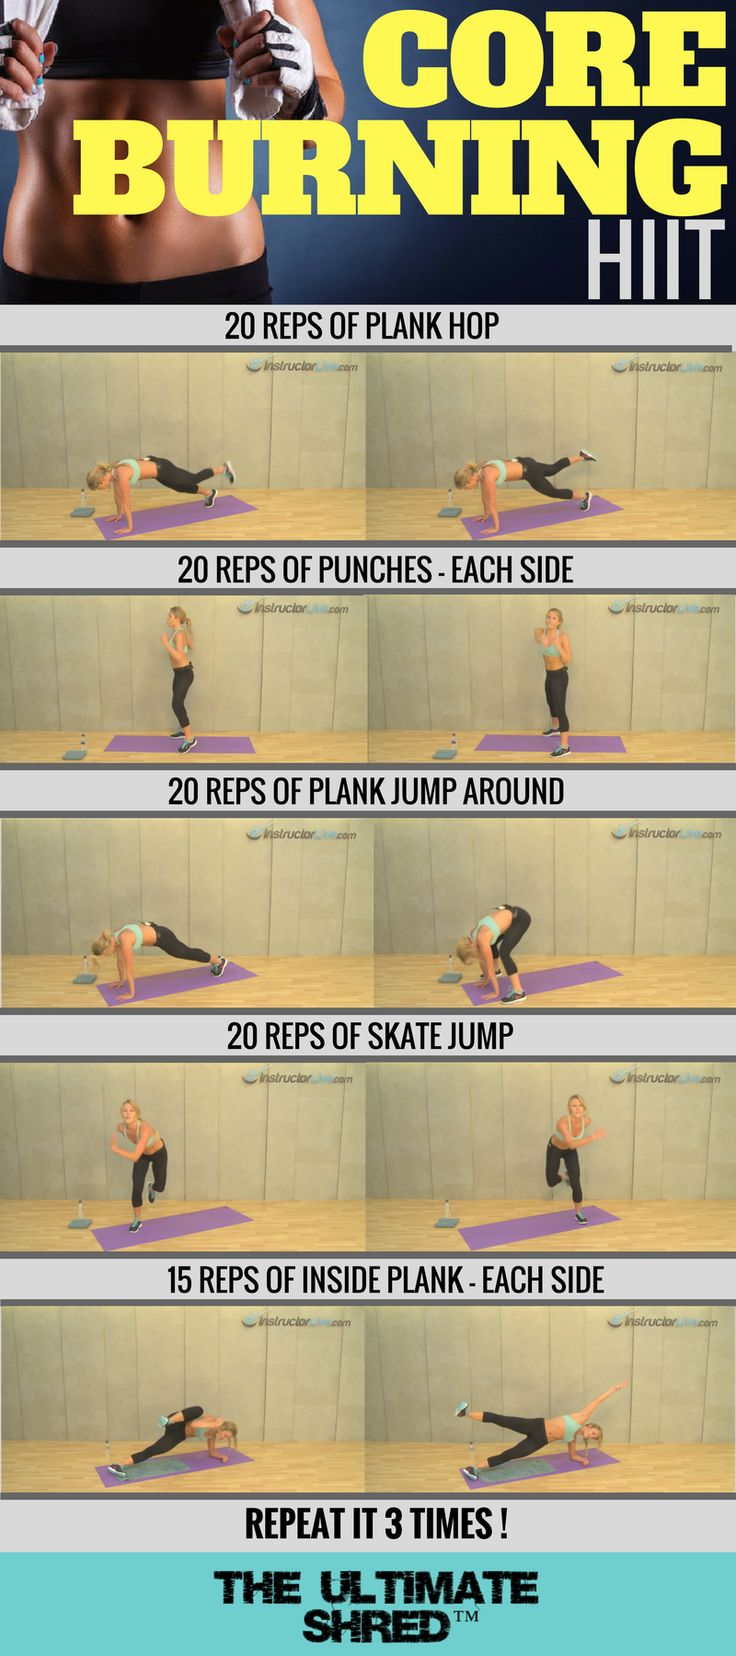 Let's burn that core. Join us and get free workout plan here!